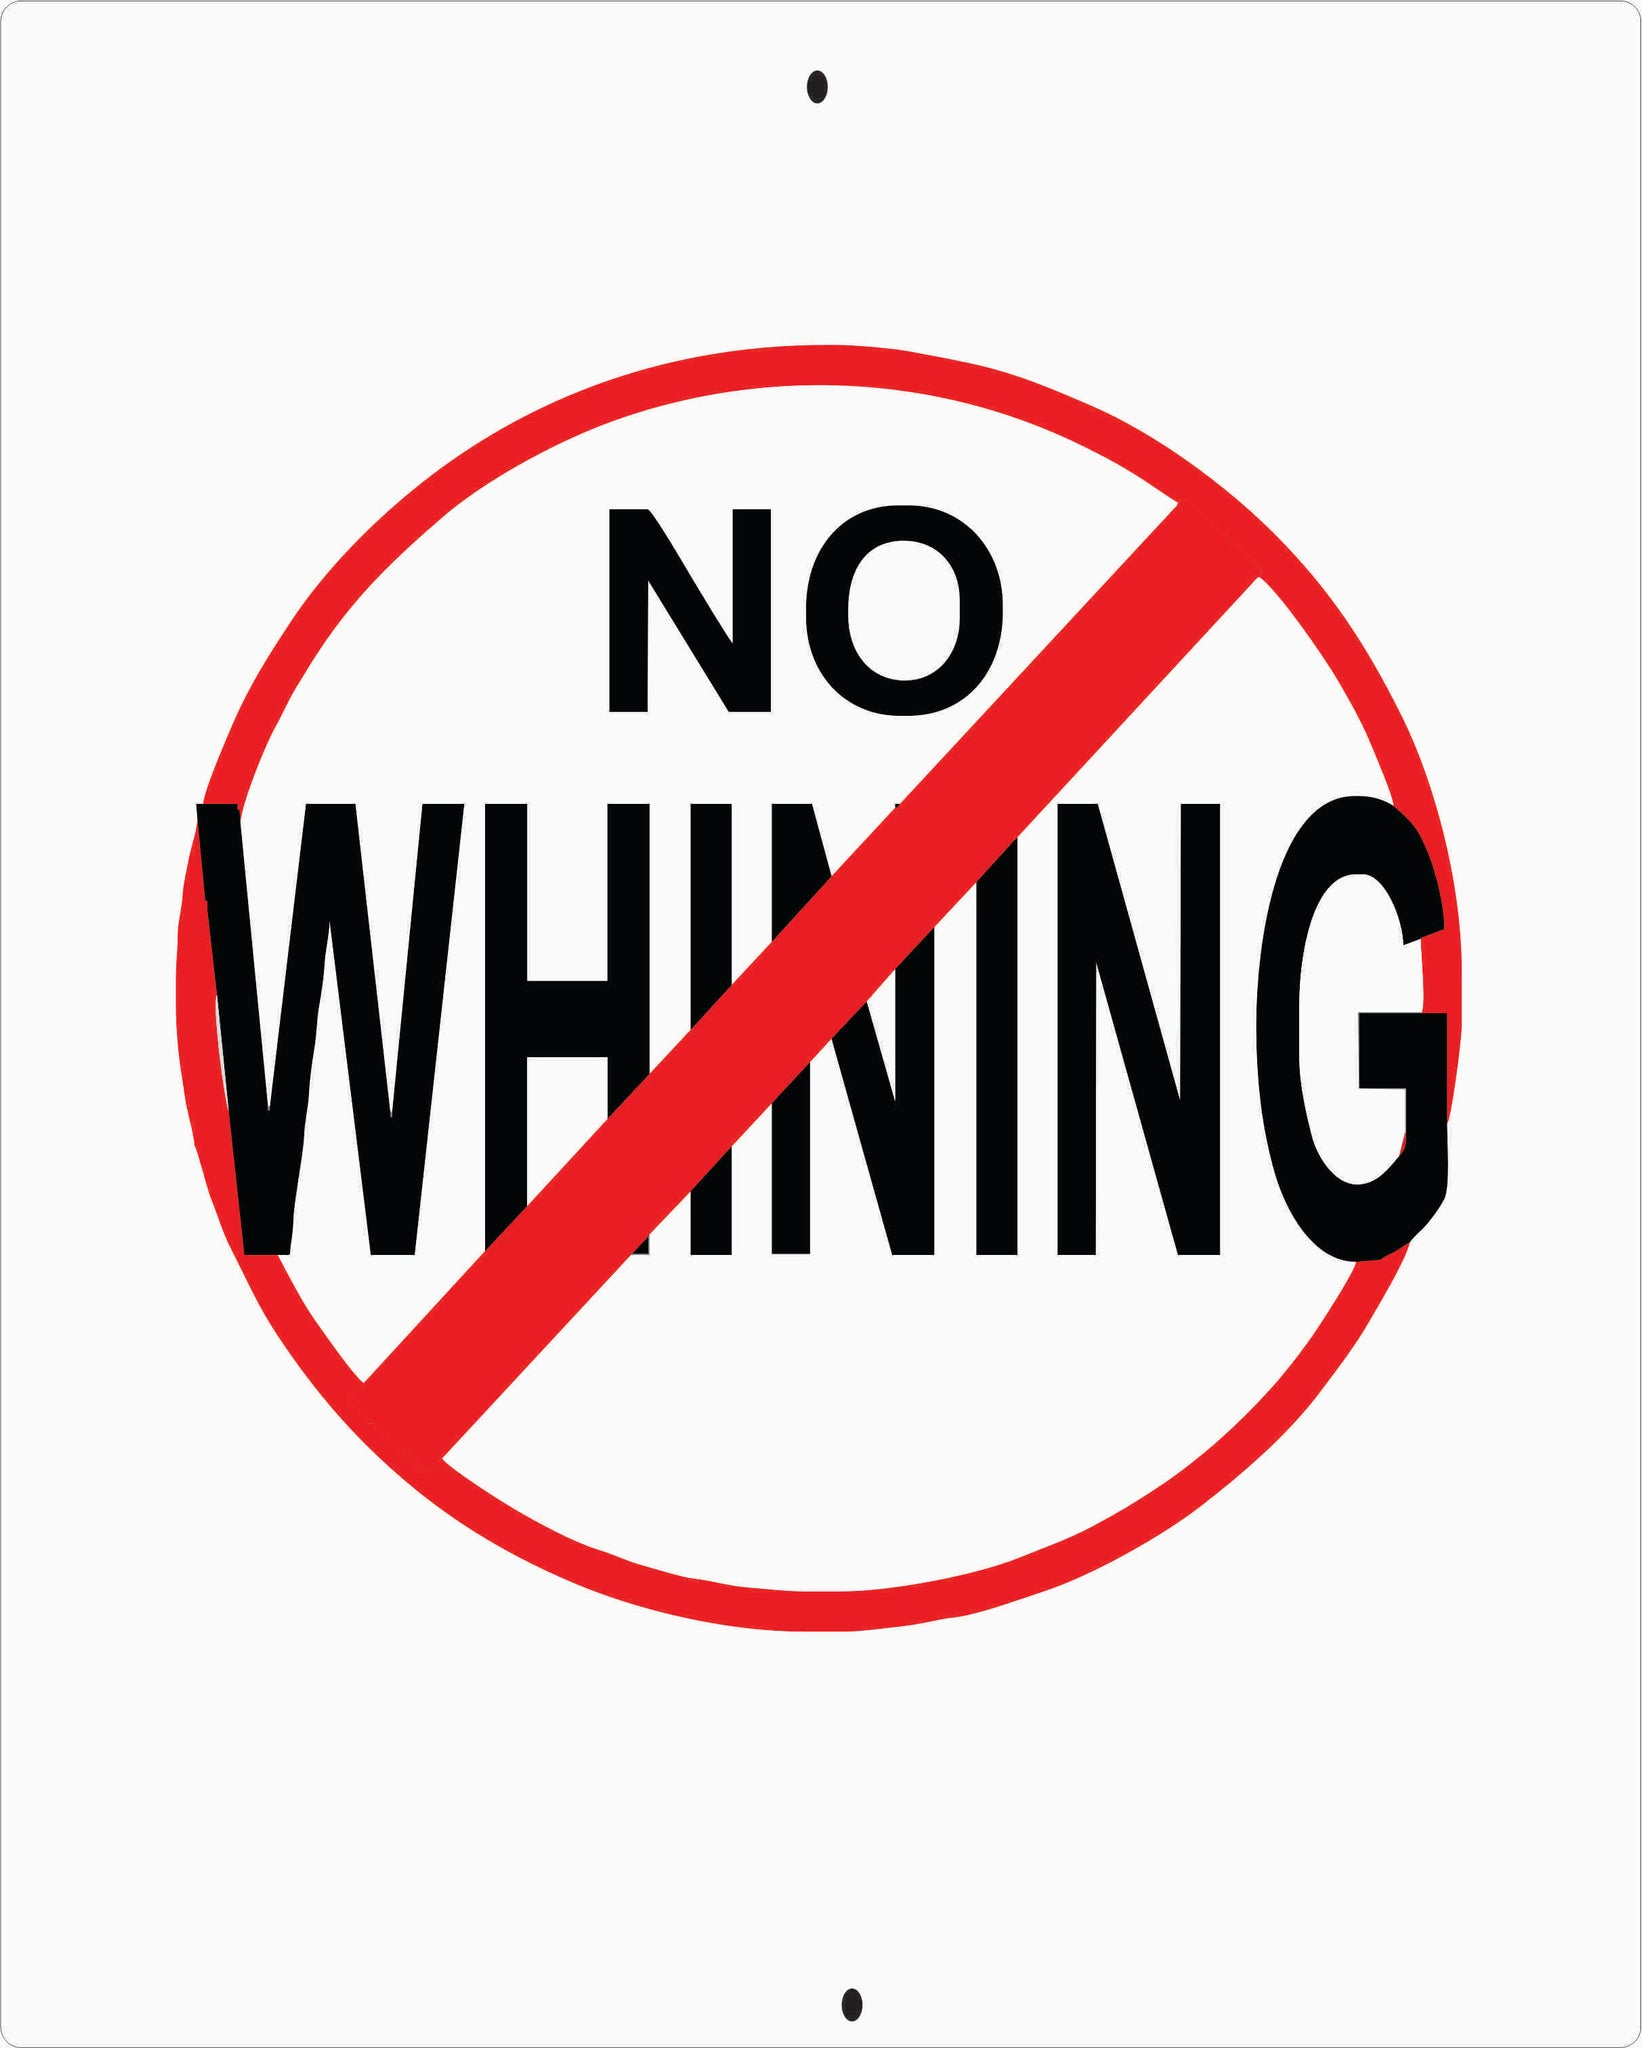 NO WHINNING Metal Aluminum Sign.8 X 10 Custom made